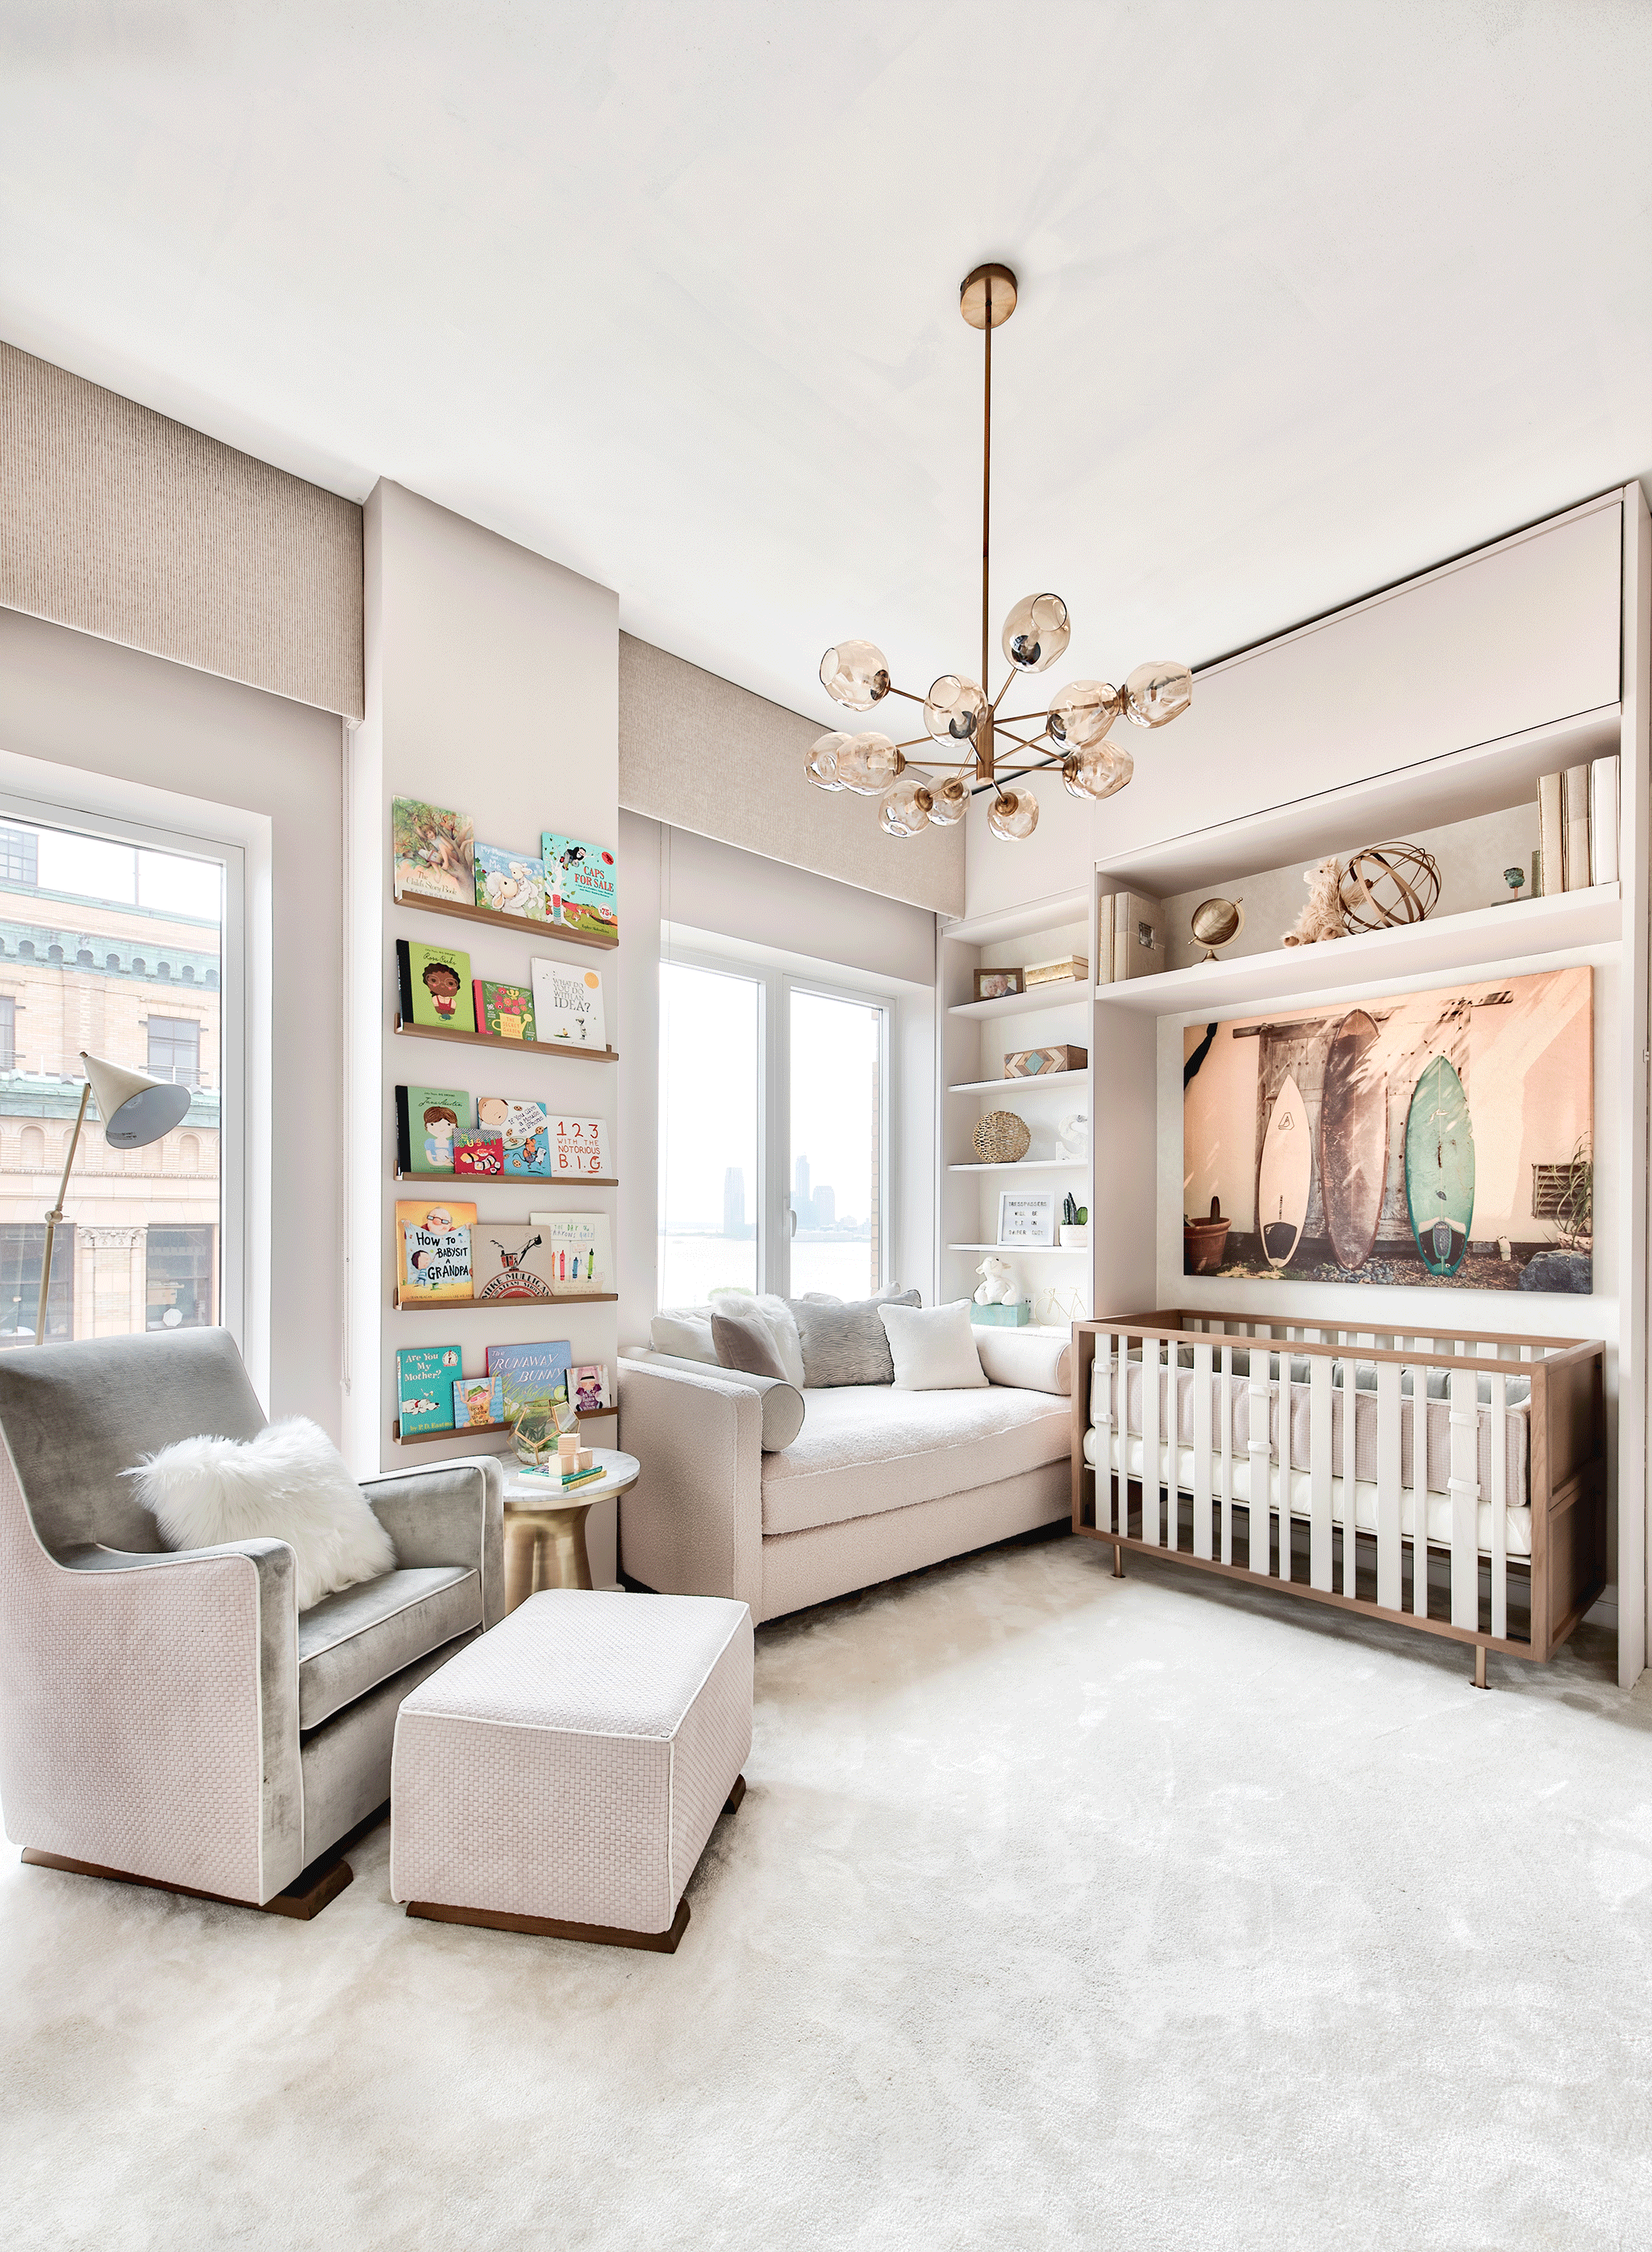 How To Pull Off A Gender Surprise Nursery Project Nursery Room